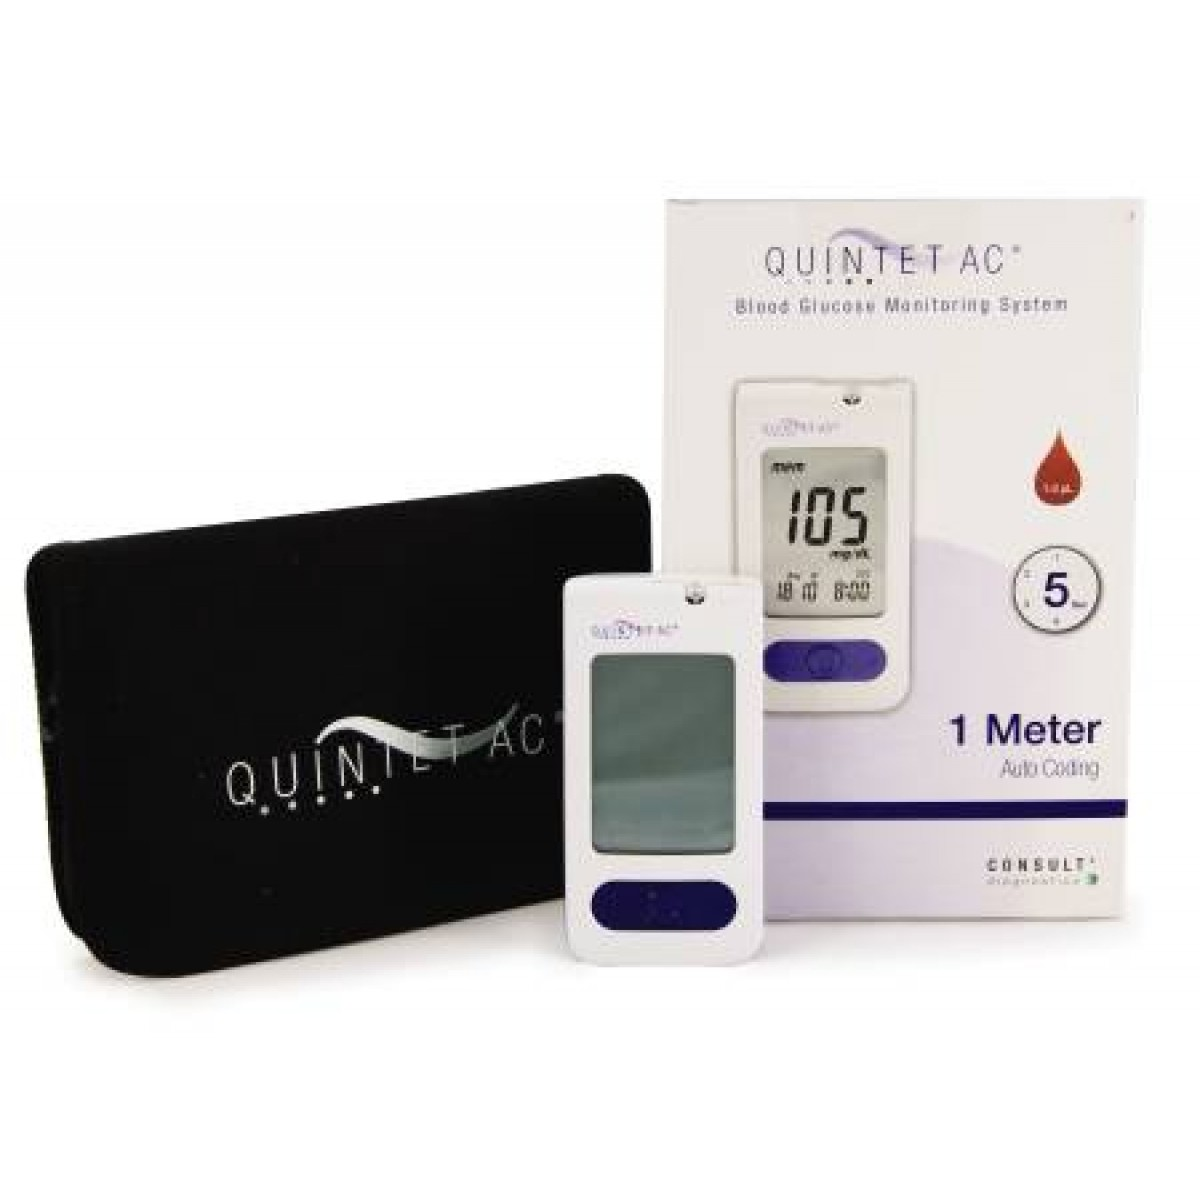 Quintet Ac Blood Glucose Monitoring System 5055